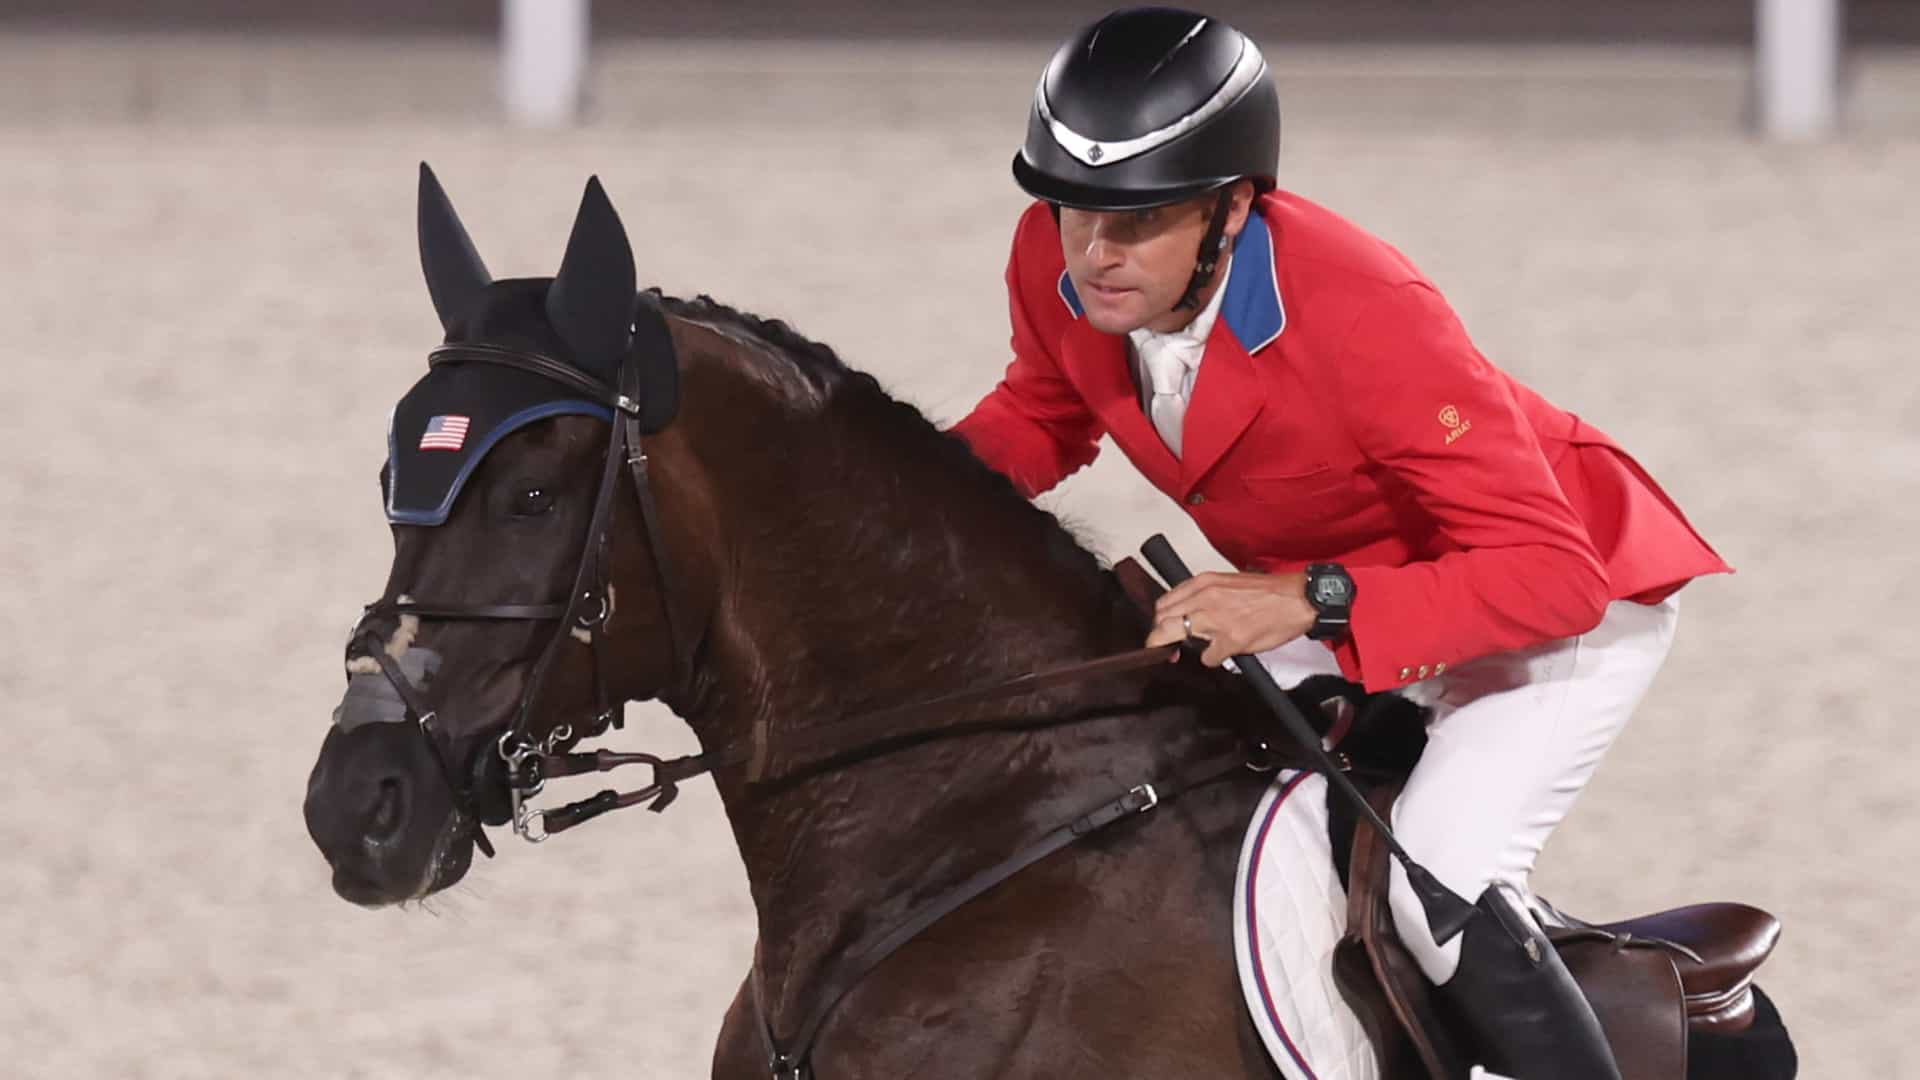 Image for Podcast: Behind the scenes at the Olympic equestrian stables